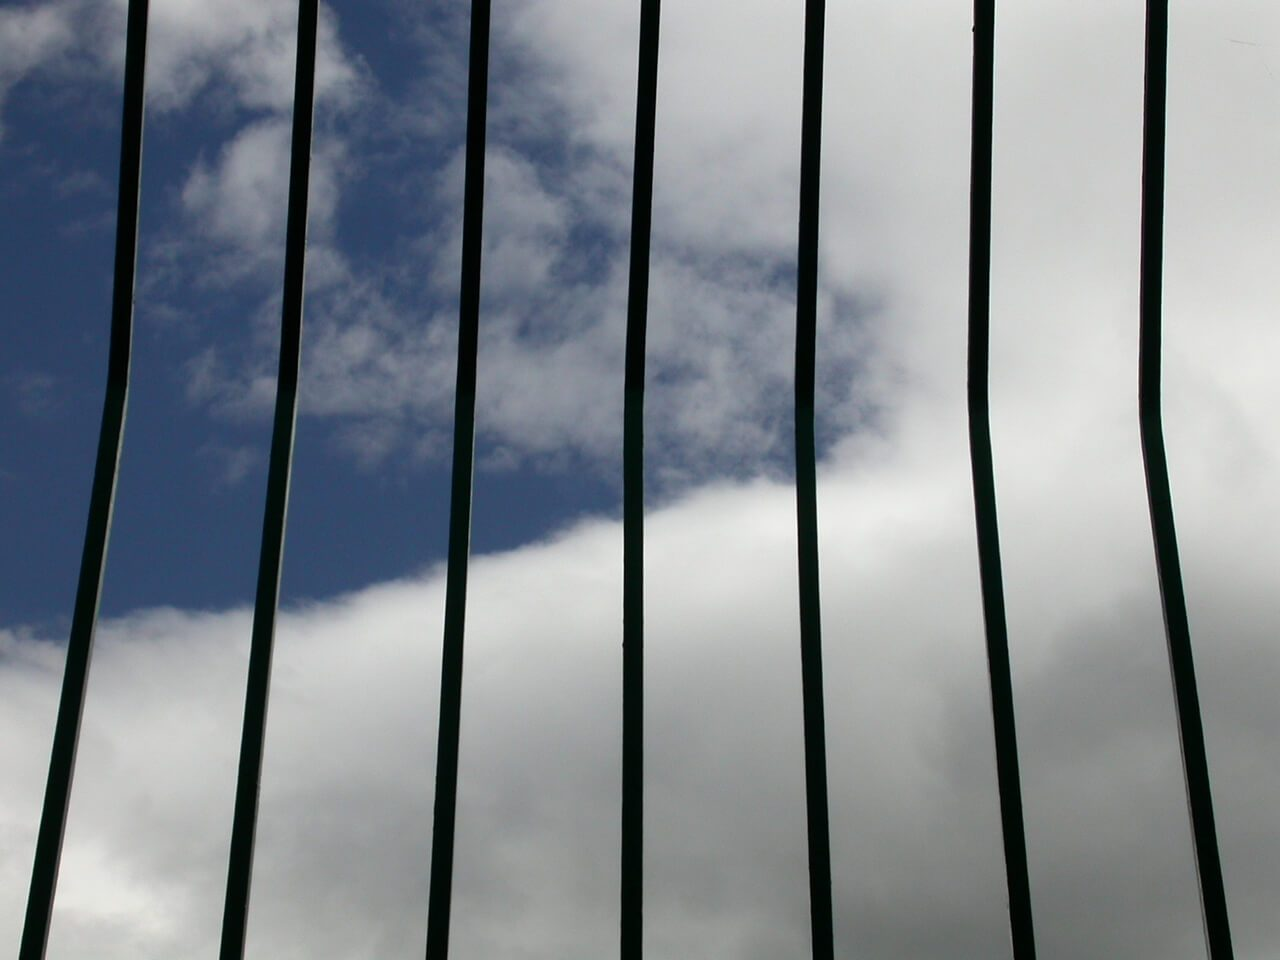 Bars and clouds